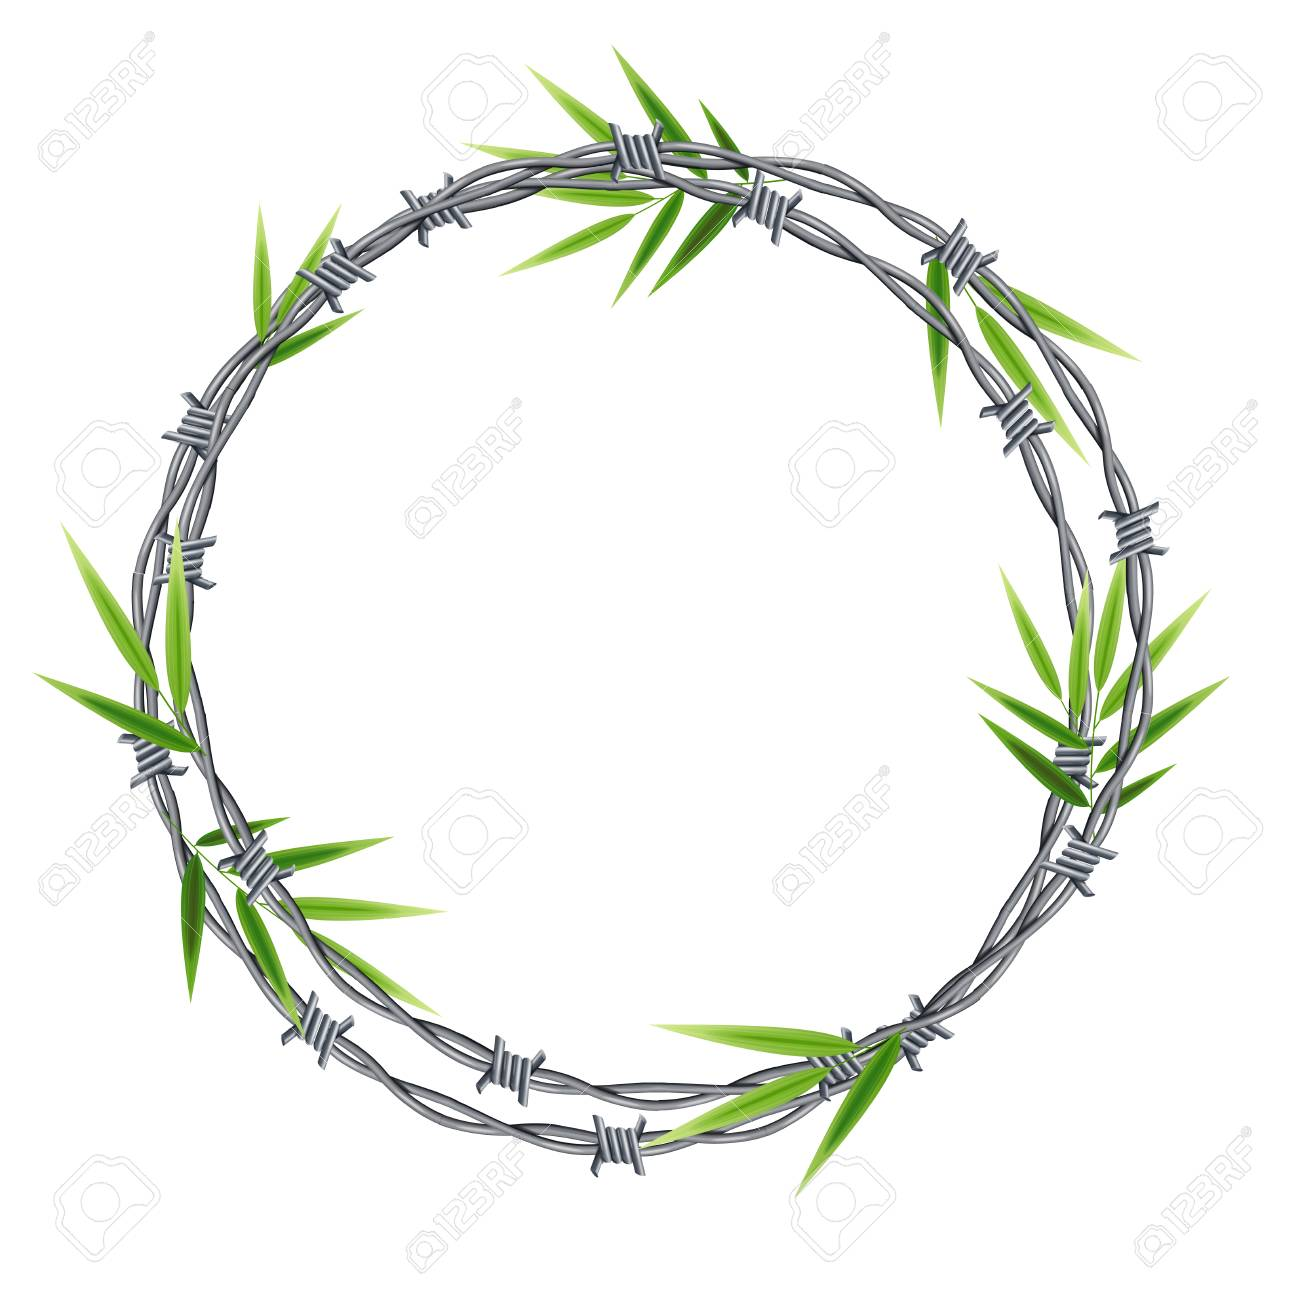 Realistic 3d Detailed Barbed Wire Frame With Green Leaf Bamboo ...